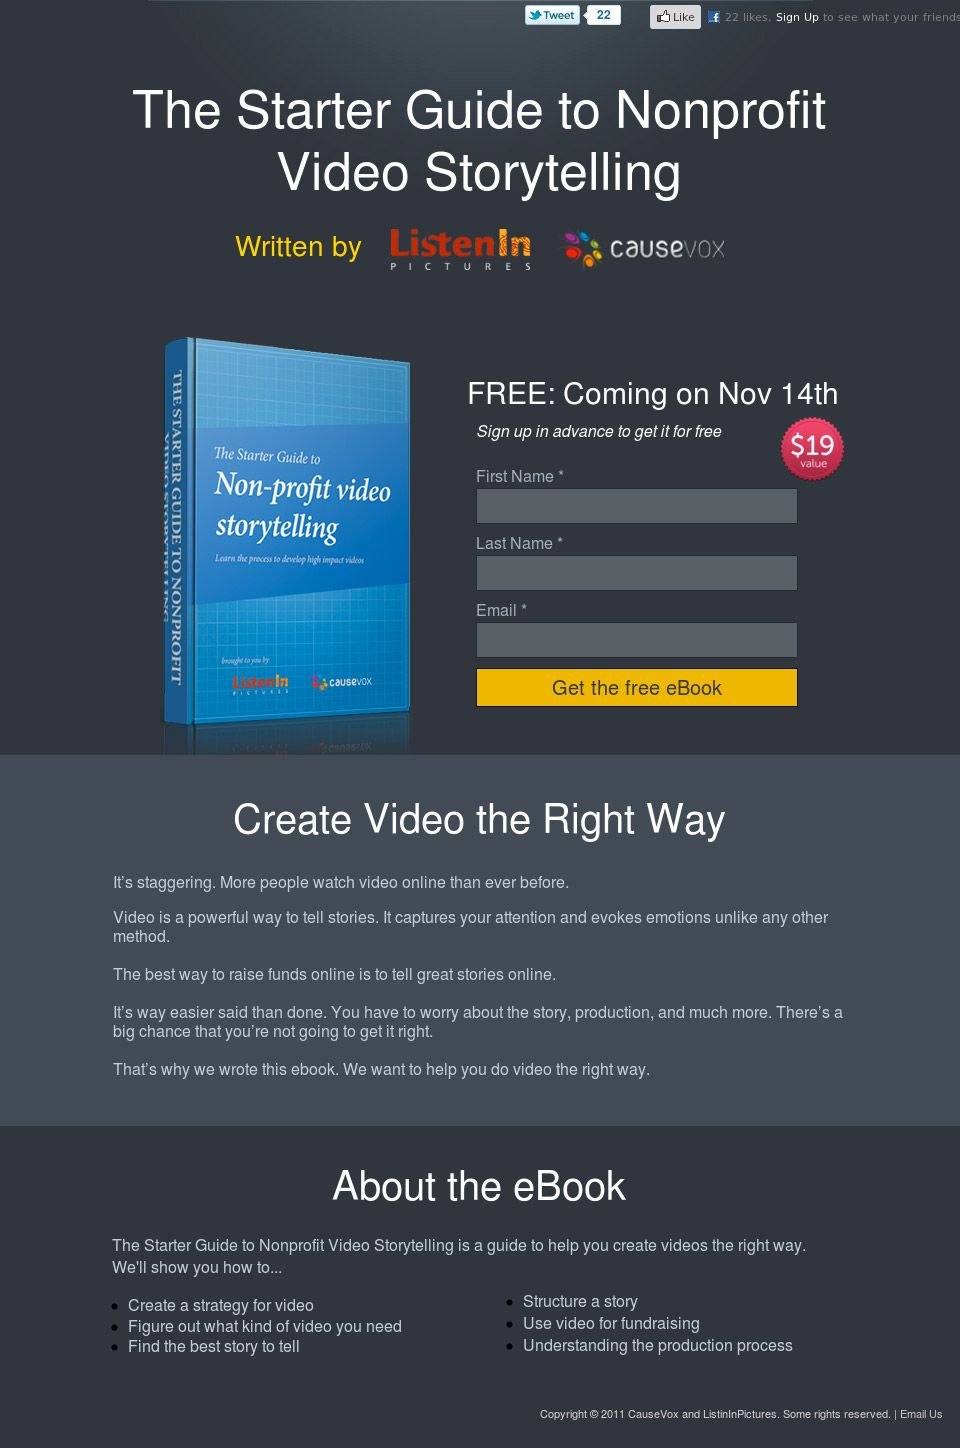 the best landing page design examples to inspire your next layoutvideo storytelling landing page examples, best landing page design, best landing pages, sign